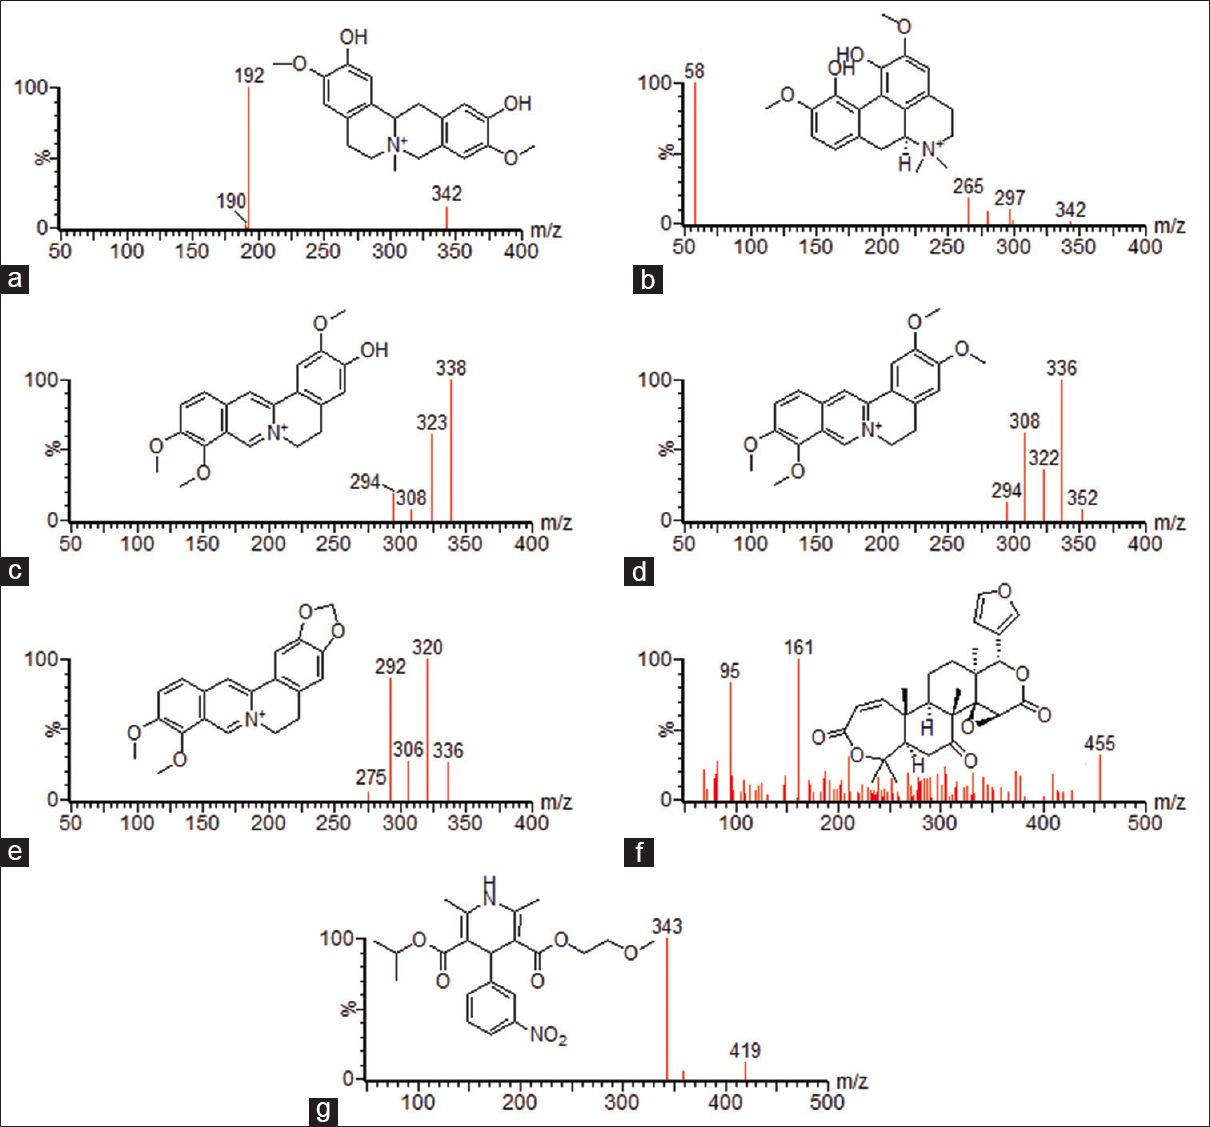 Figure 1: The products spectra and fragmentation reaction of the seven compounds in positive electrospray ionization mode: (a) phellodendrine, (b) magnoflorine, (c) jatrorrhizine, (d) palmatine, (e) berberine, (f) obacunone, and (g) nimodipine